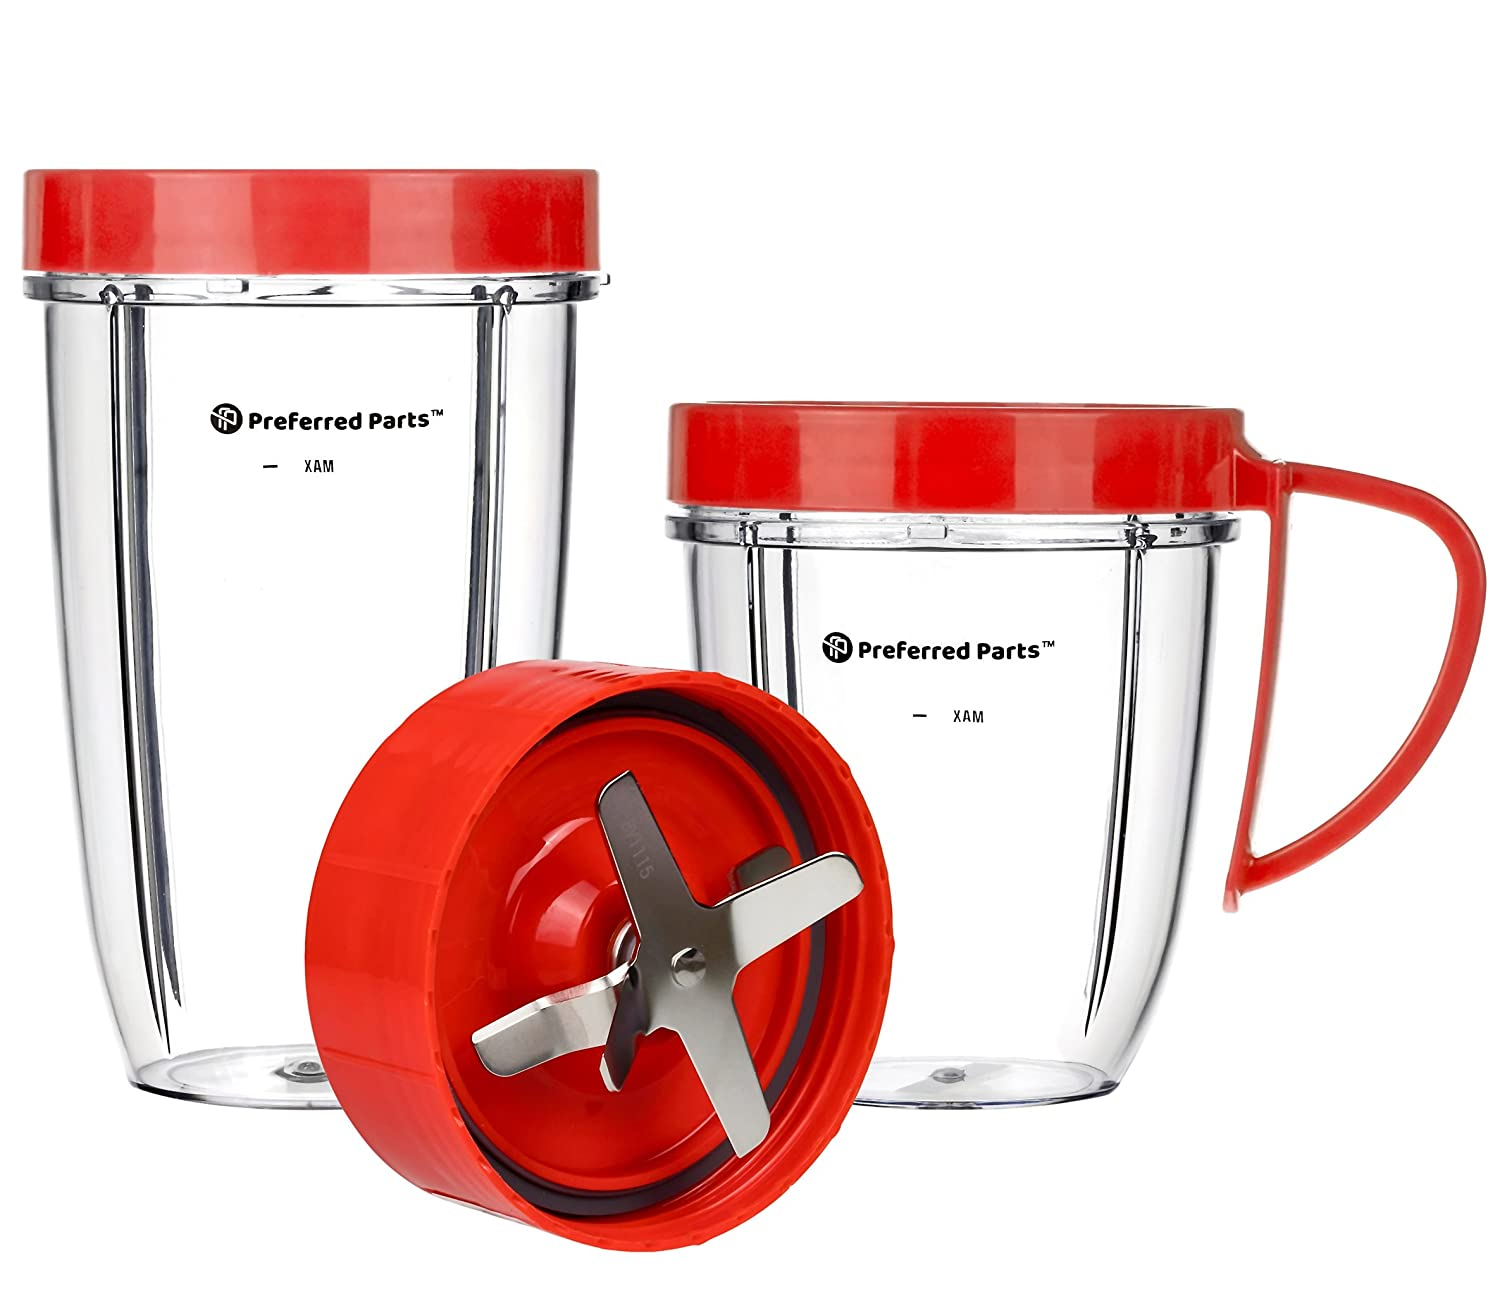 Cup and Blade 5 Pc Set for NutriBullet Replacement High Speed Blender Mixer System MT PP-NTB5PC